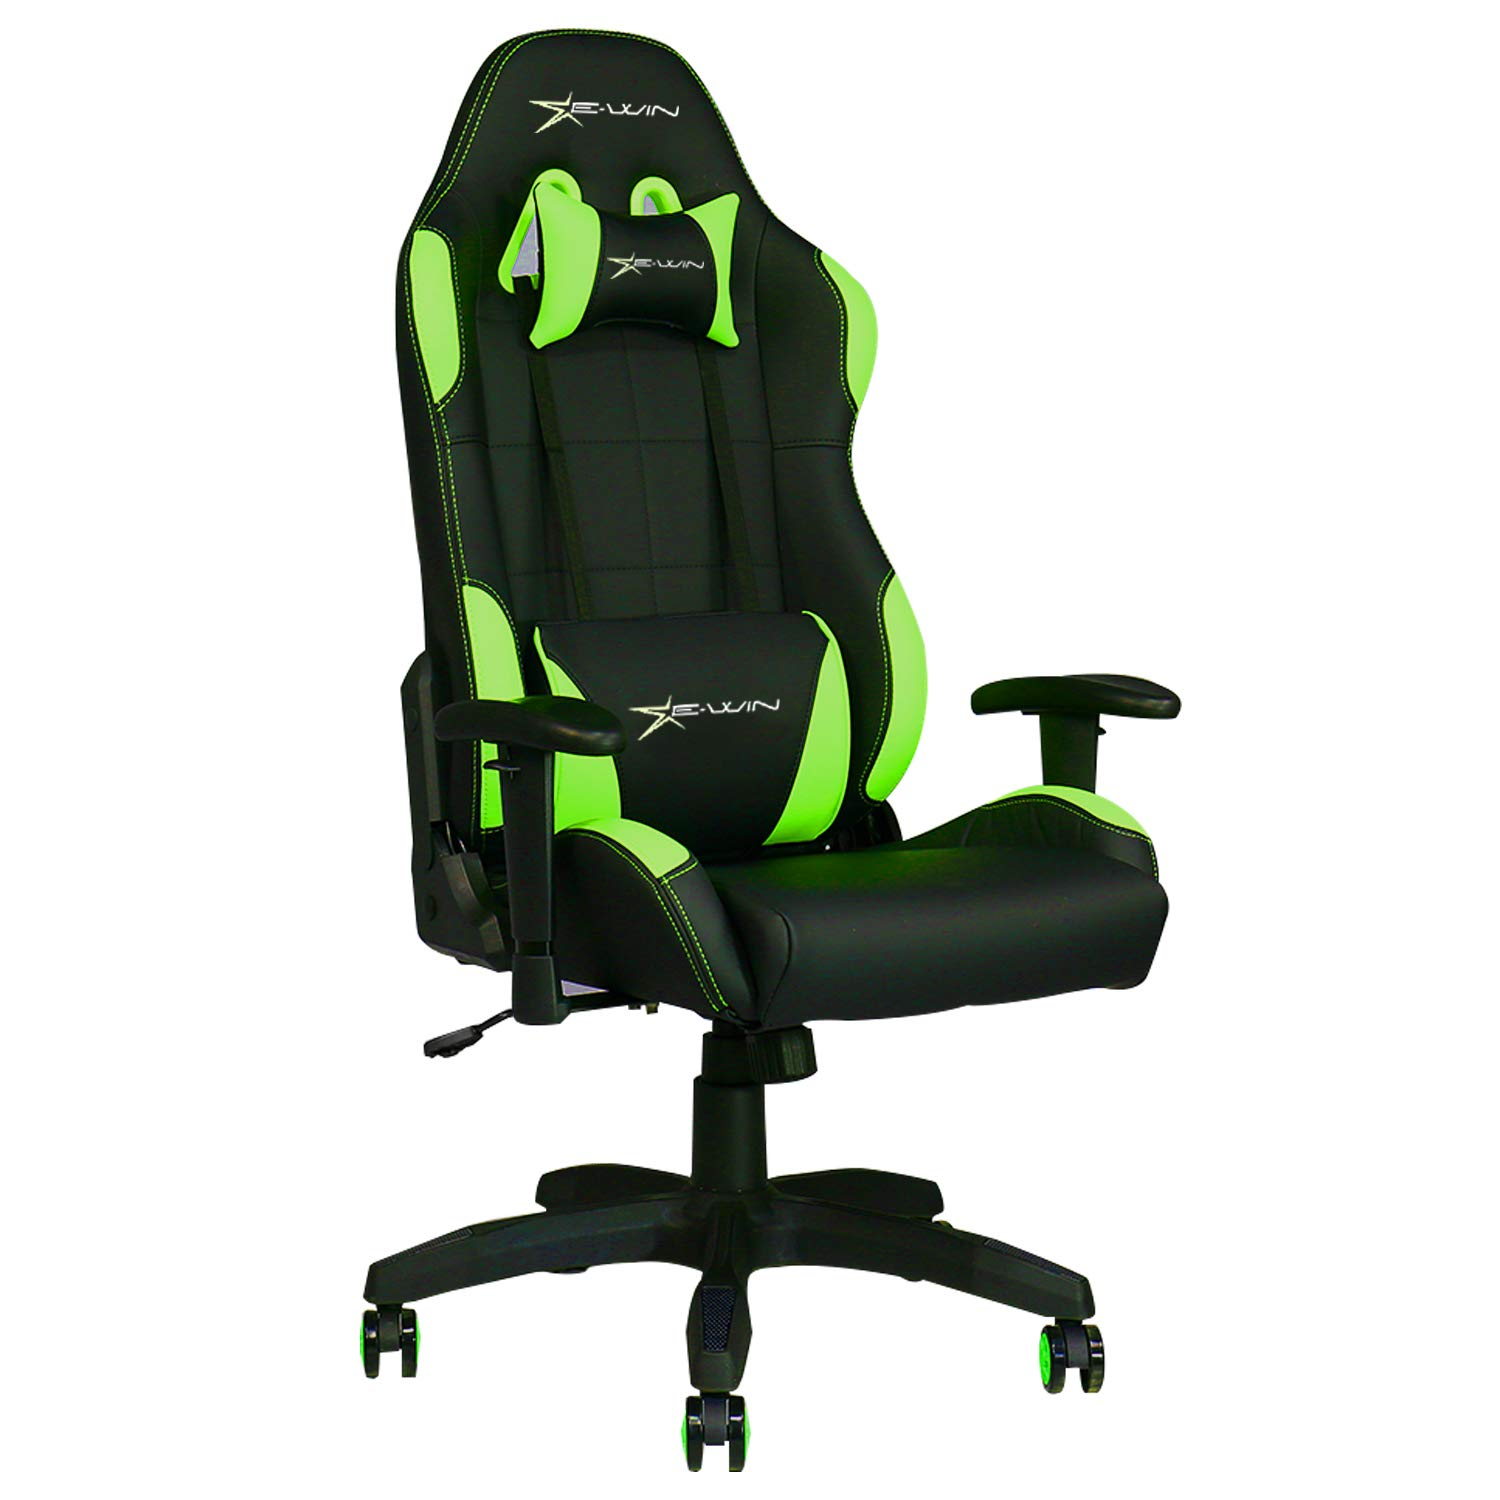 E-WIN Gaming Chair Ergonomic High Back PU Leather Racing Style with Adjustable Armrest and Back Recliner Swivel Rocker Office Chair Green by E-WIN